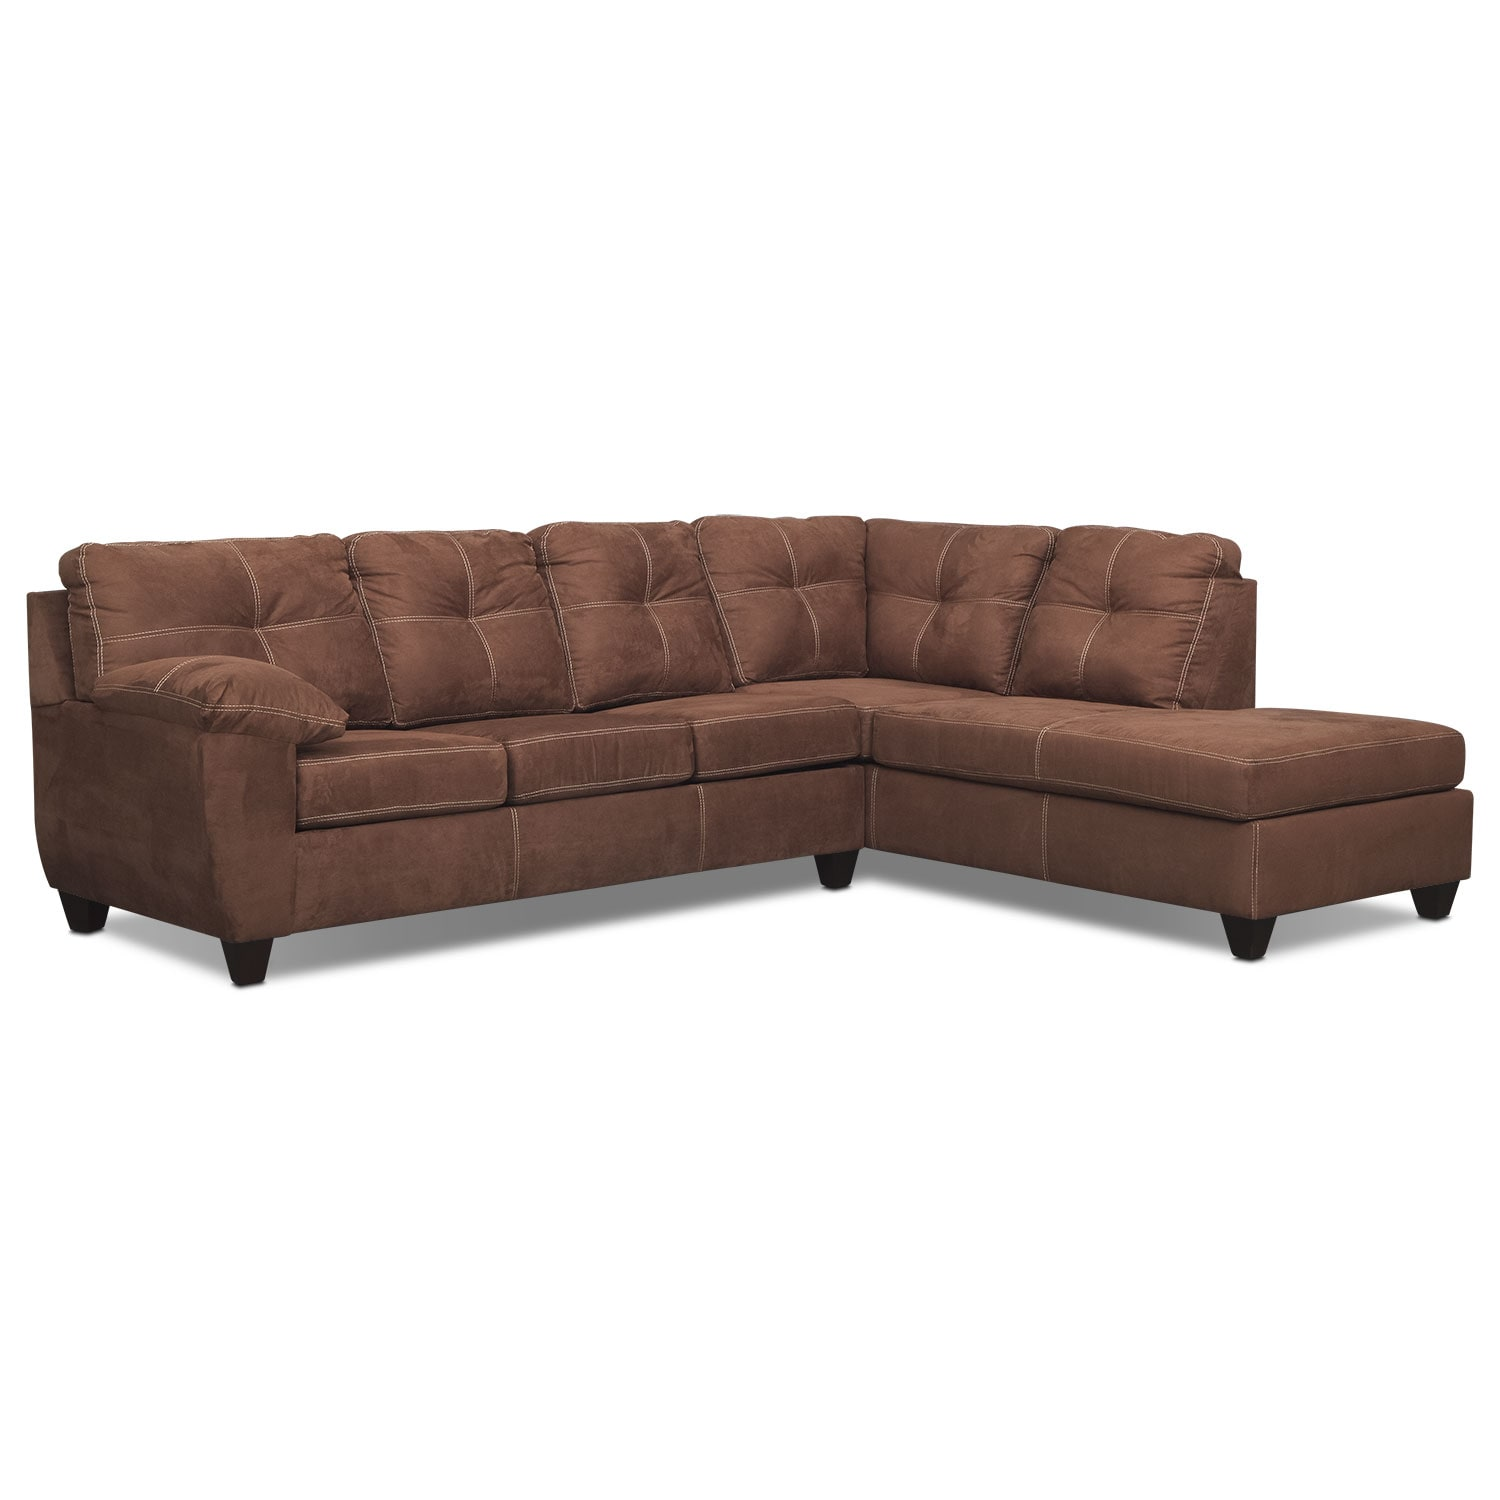 Living Room Furniture - Rialto Coffee 2 Pc. Innerspring Sleeper Sectional with Right-Facing Chaise